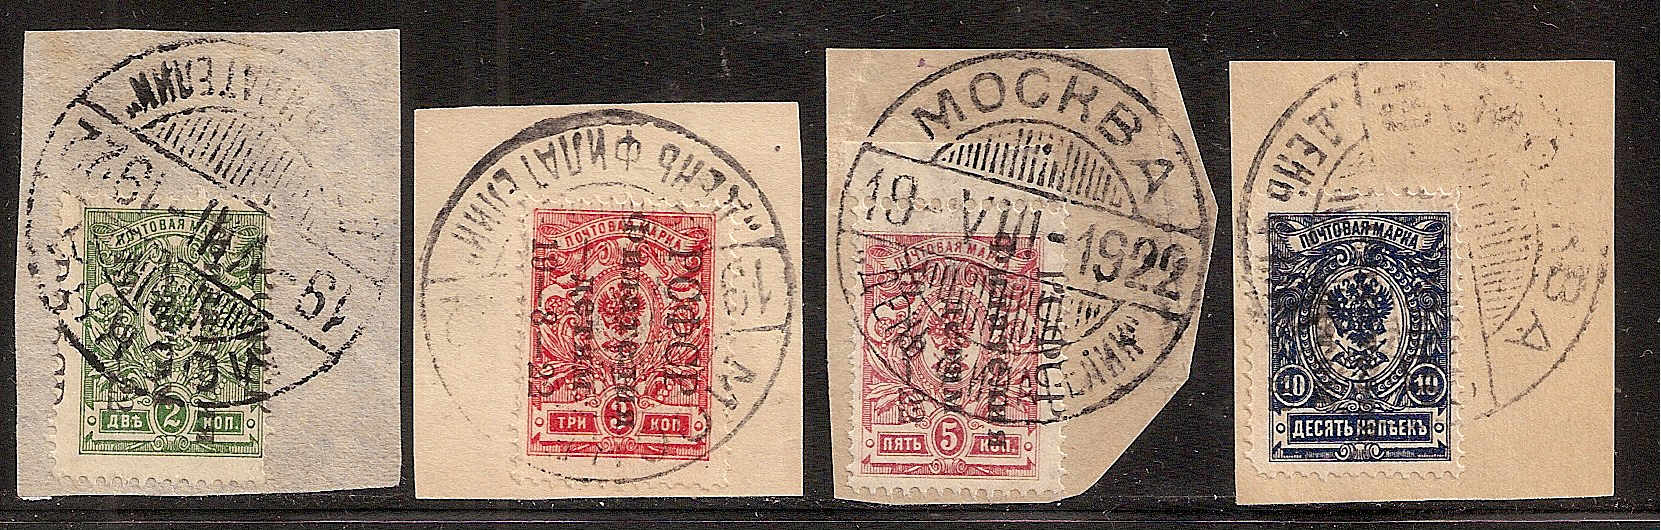 Russia Stamps-Semi-postal, Airmails, Back of Book, etc Semi-Postals Scott B25-8